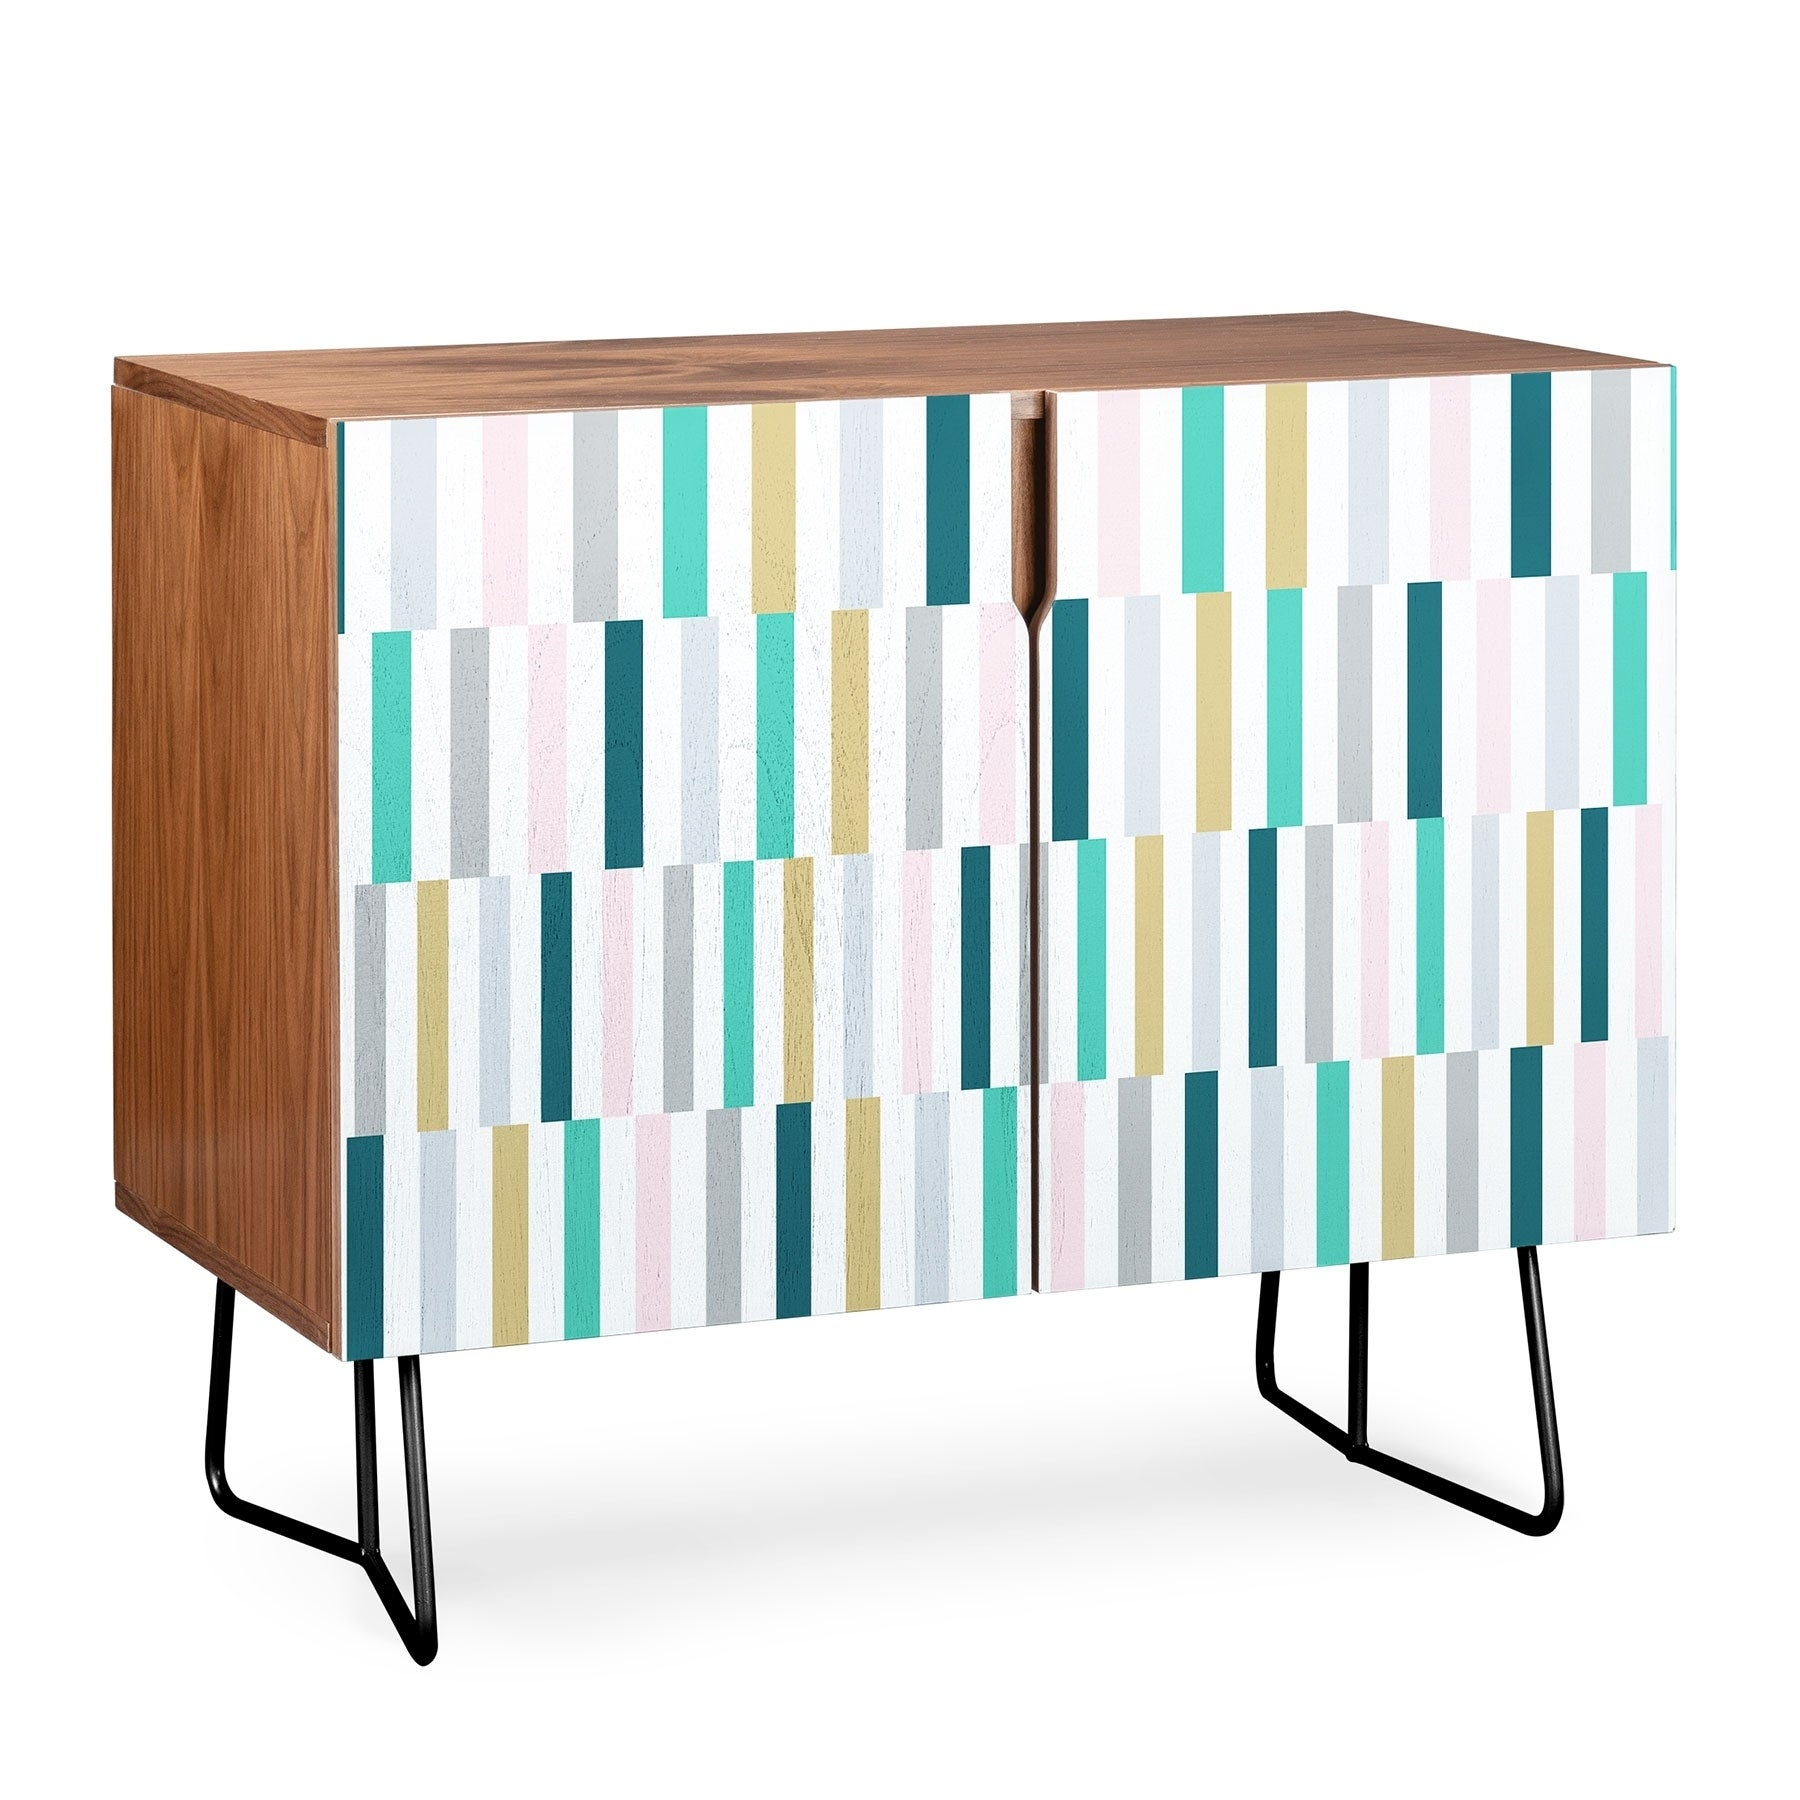 Deny Designs Scandi Stripes Credenza (Birch Or Walnut, 2 Leg Options) with regard to Multi Stripe Credenzas (Image 11 of 30)